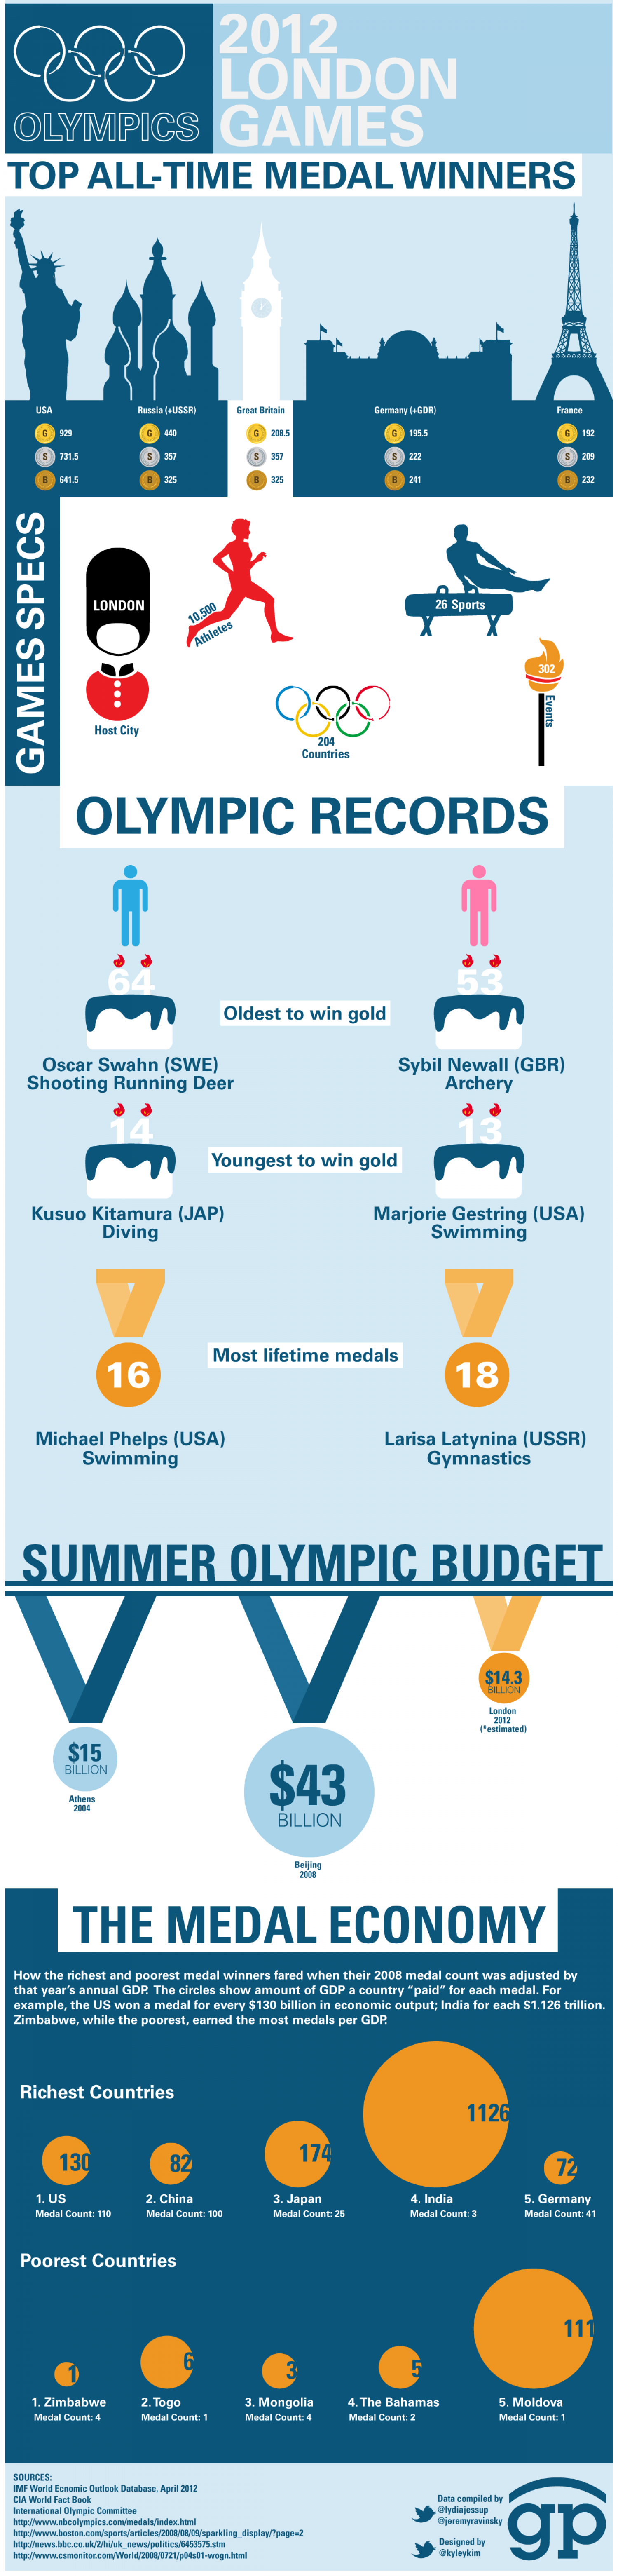 2012 London Summer Olympics Infographic